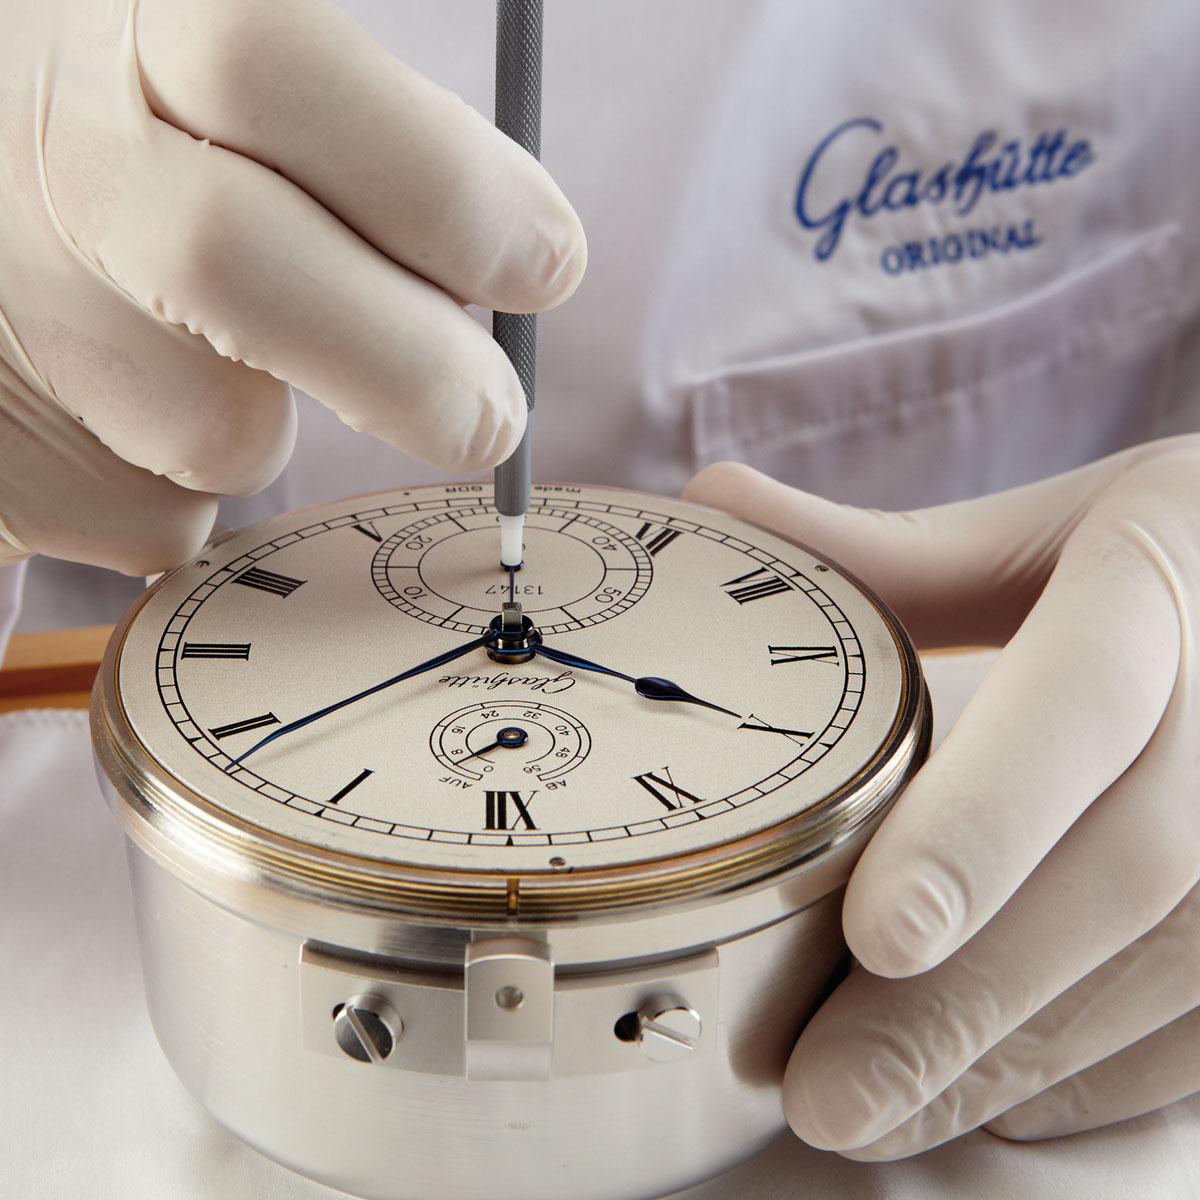 The Watch Quote: Photo - Glashütte Exclusive tribute to marine chronometers